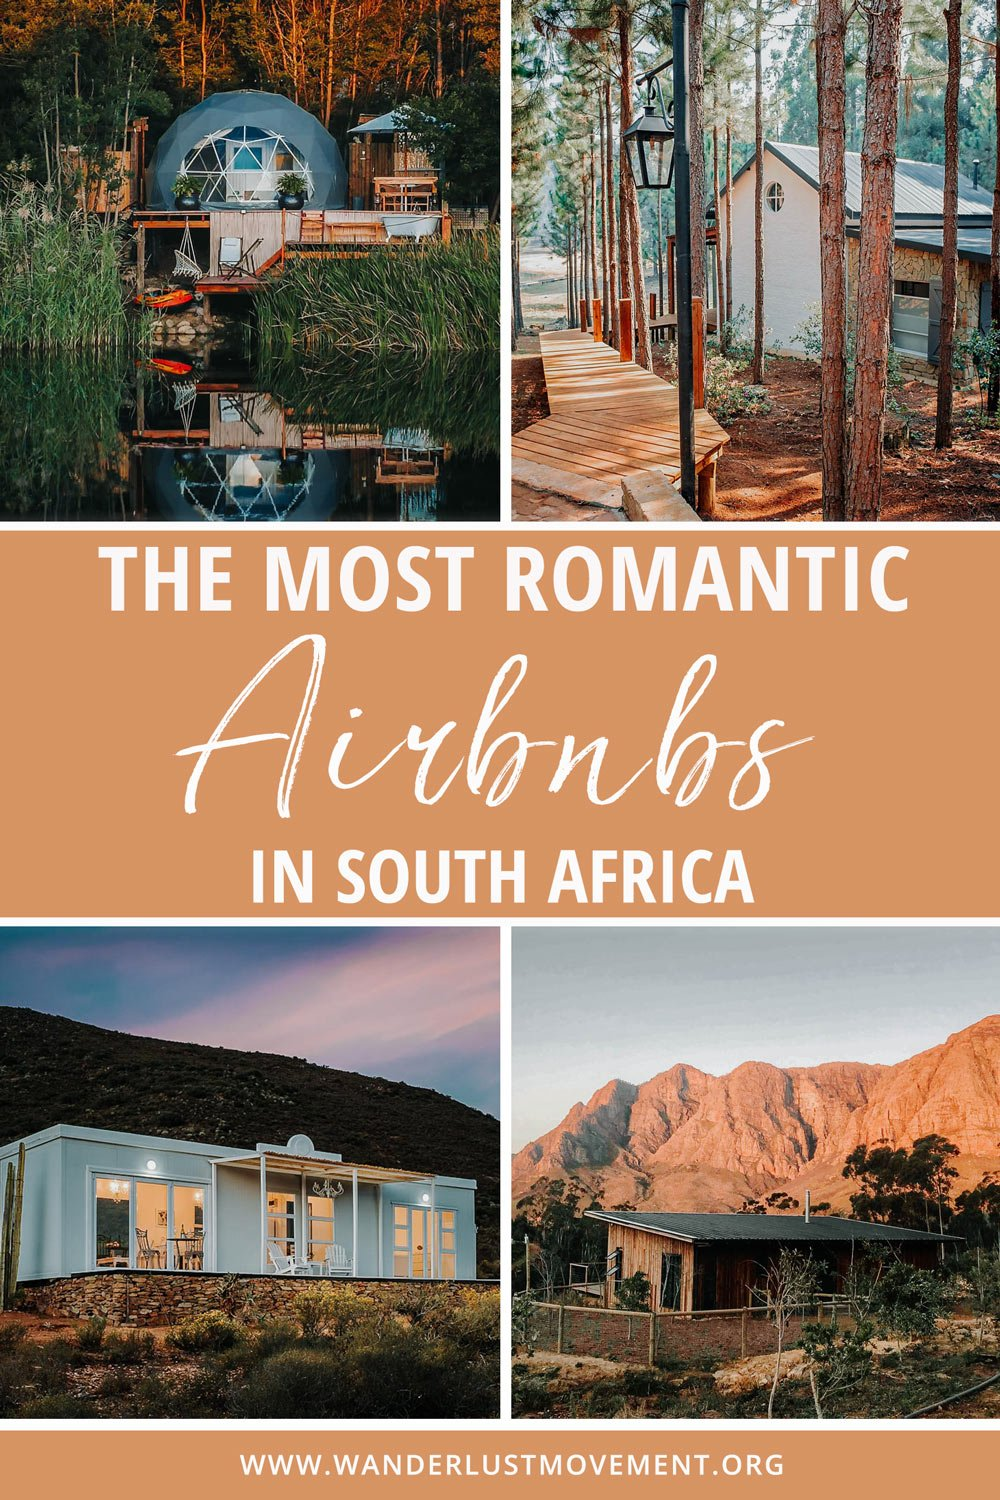 The Most Secluded & Romantic Airbnbs in South Africa